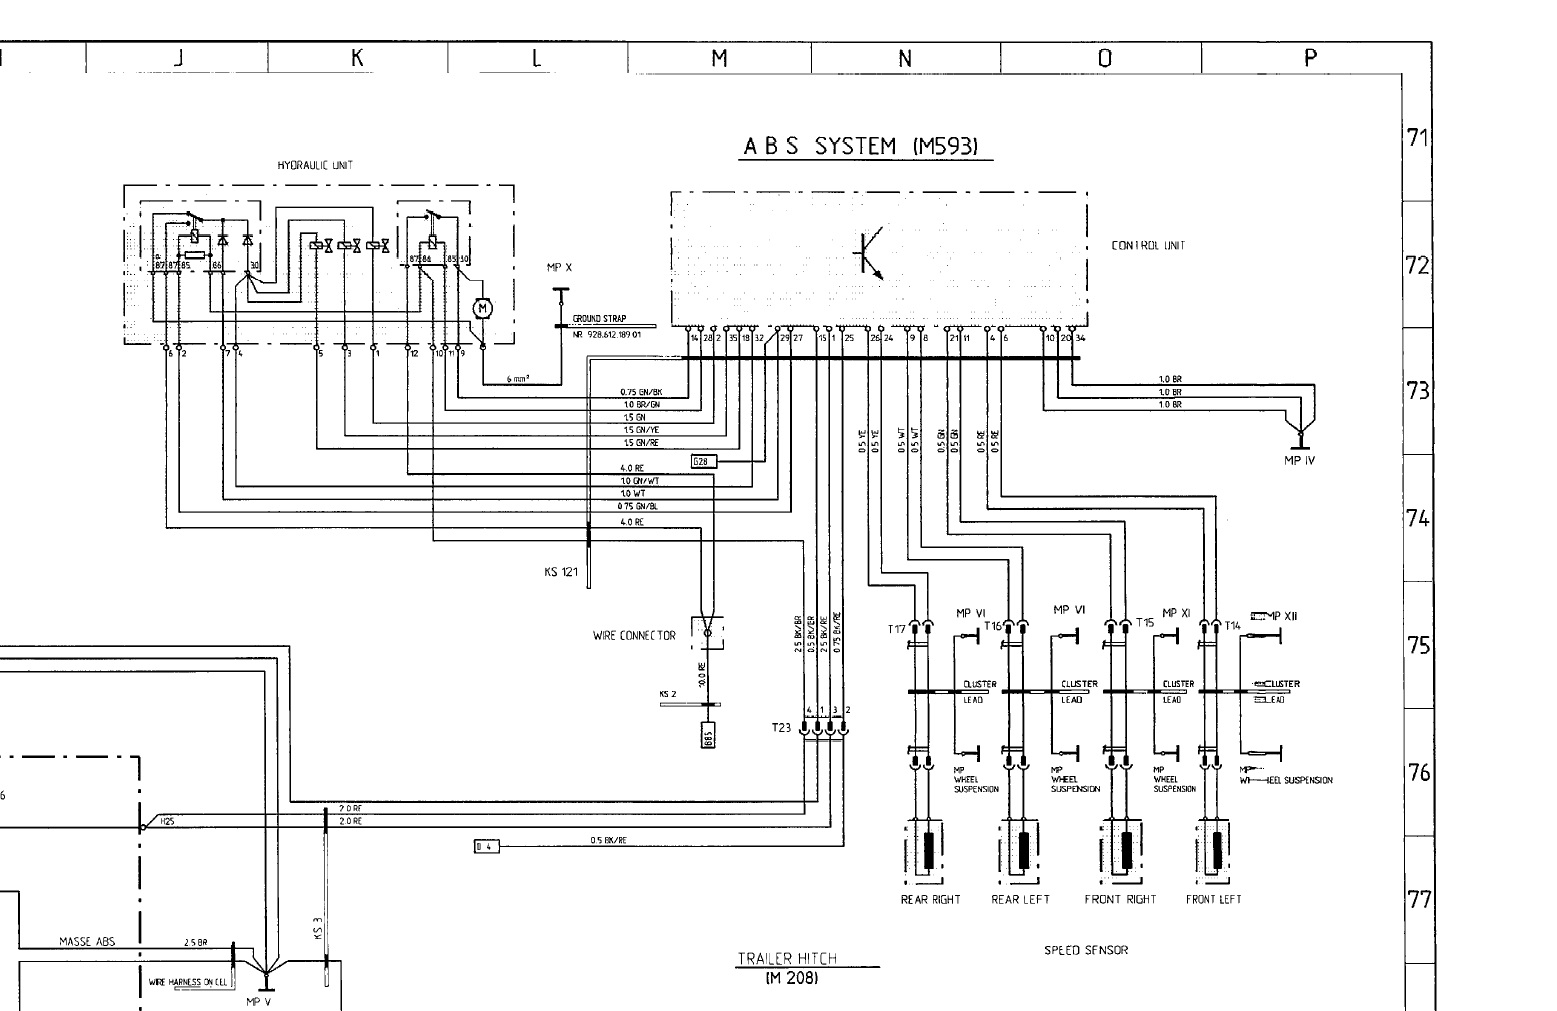 1978 Porsche 928 Wiring Diagram - Wiring Diagram